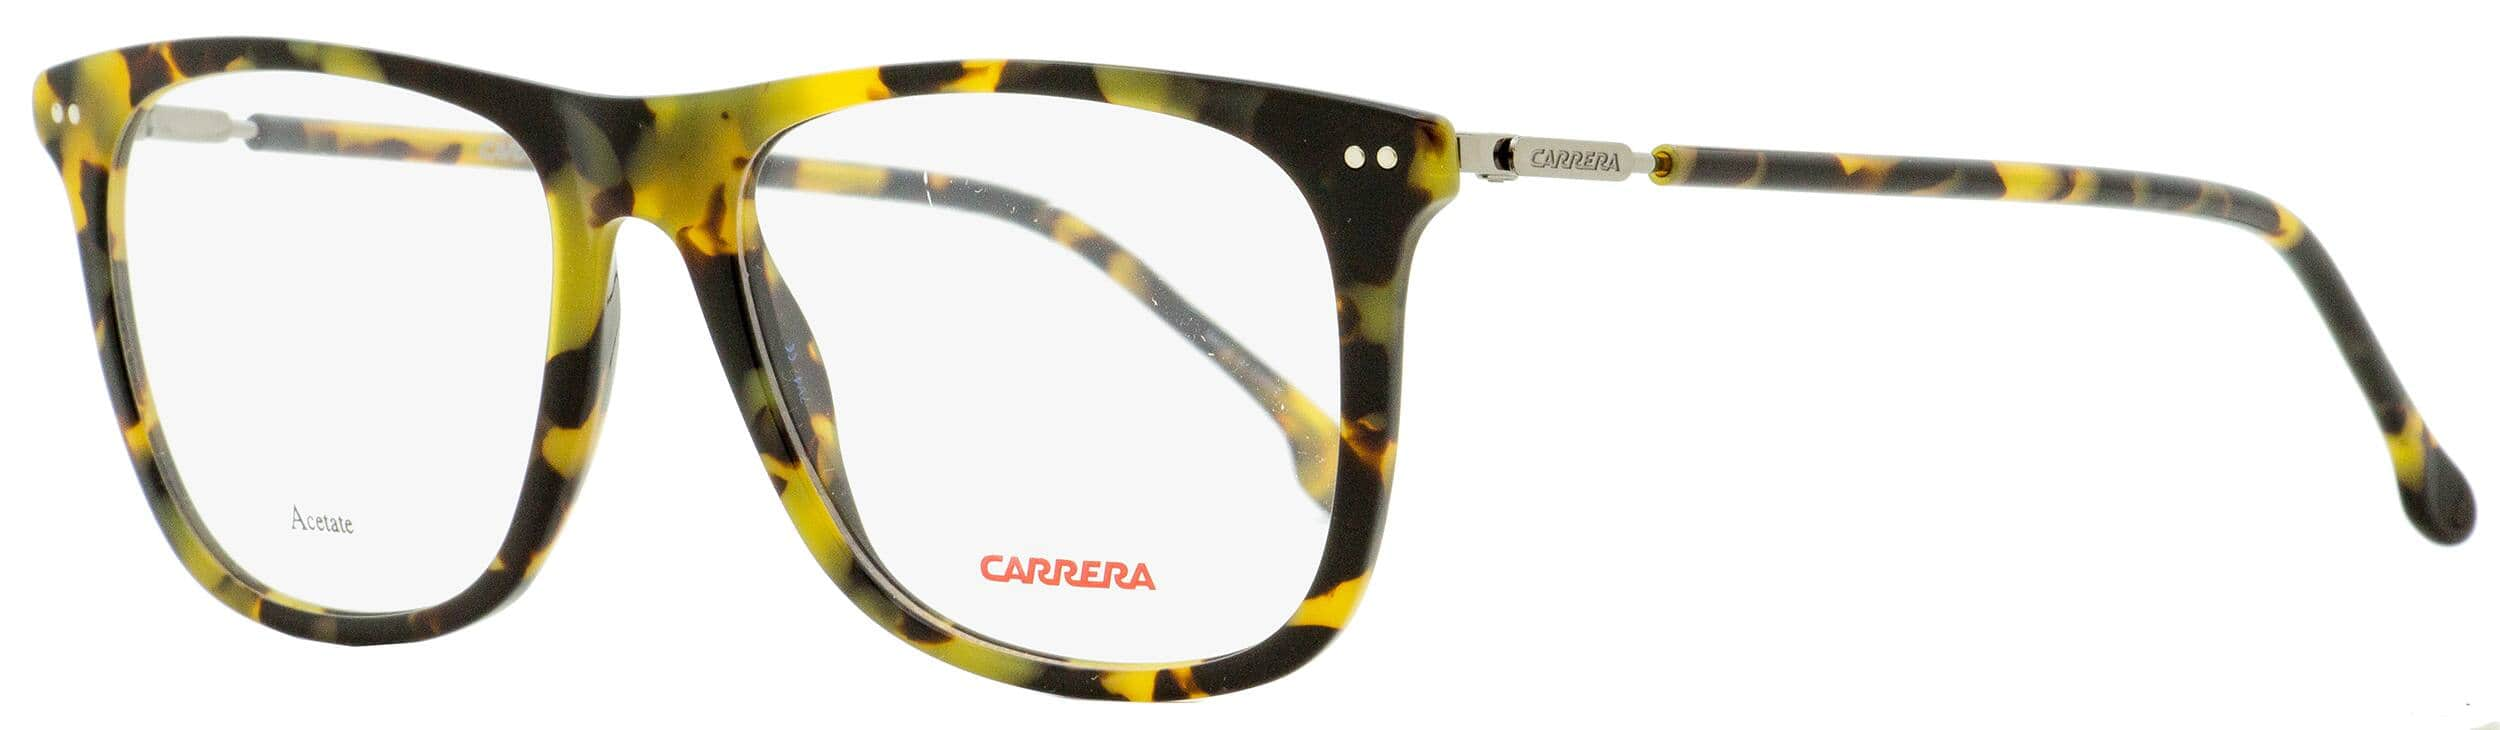 Carrera Eyeglasses w/ Case & Cleaning Cloth from $23.40 + Free Shipping